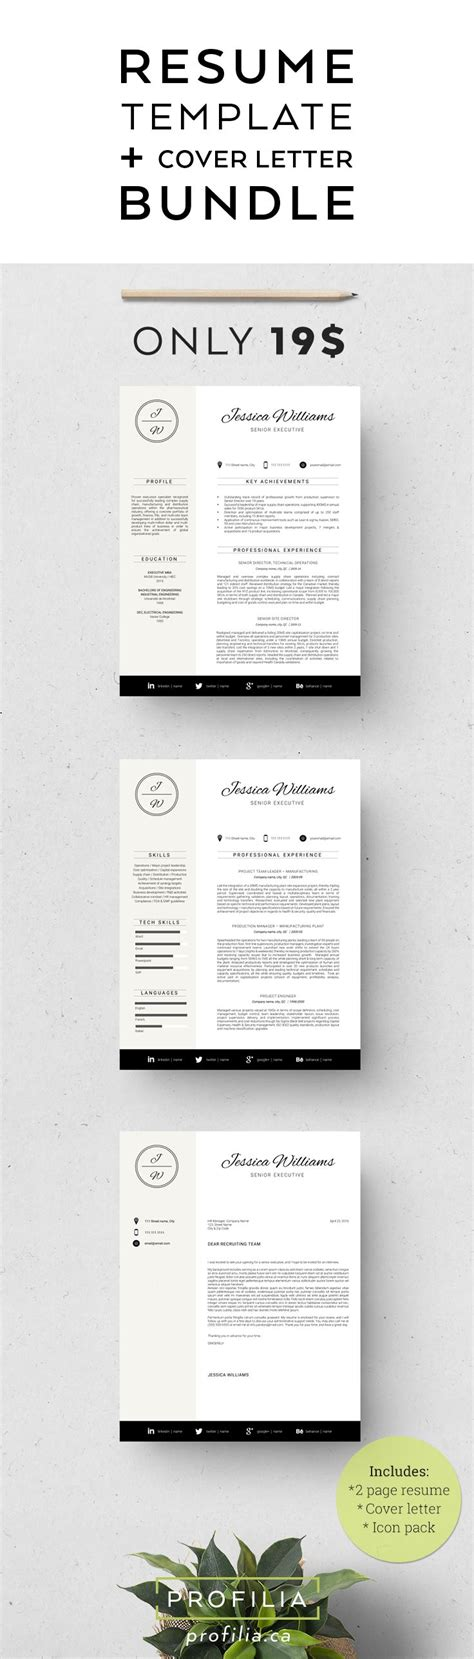 best 25 resume cover letters ideas on resume